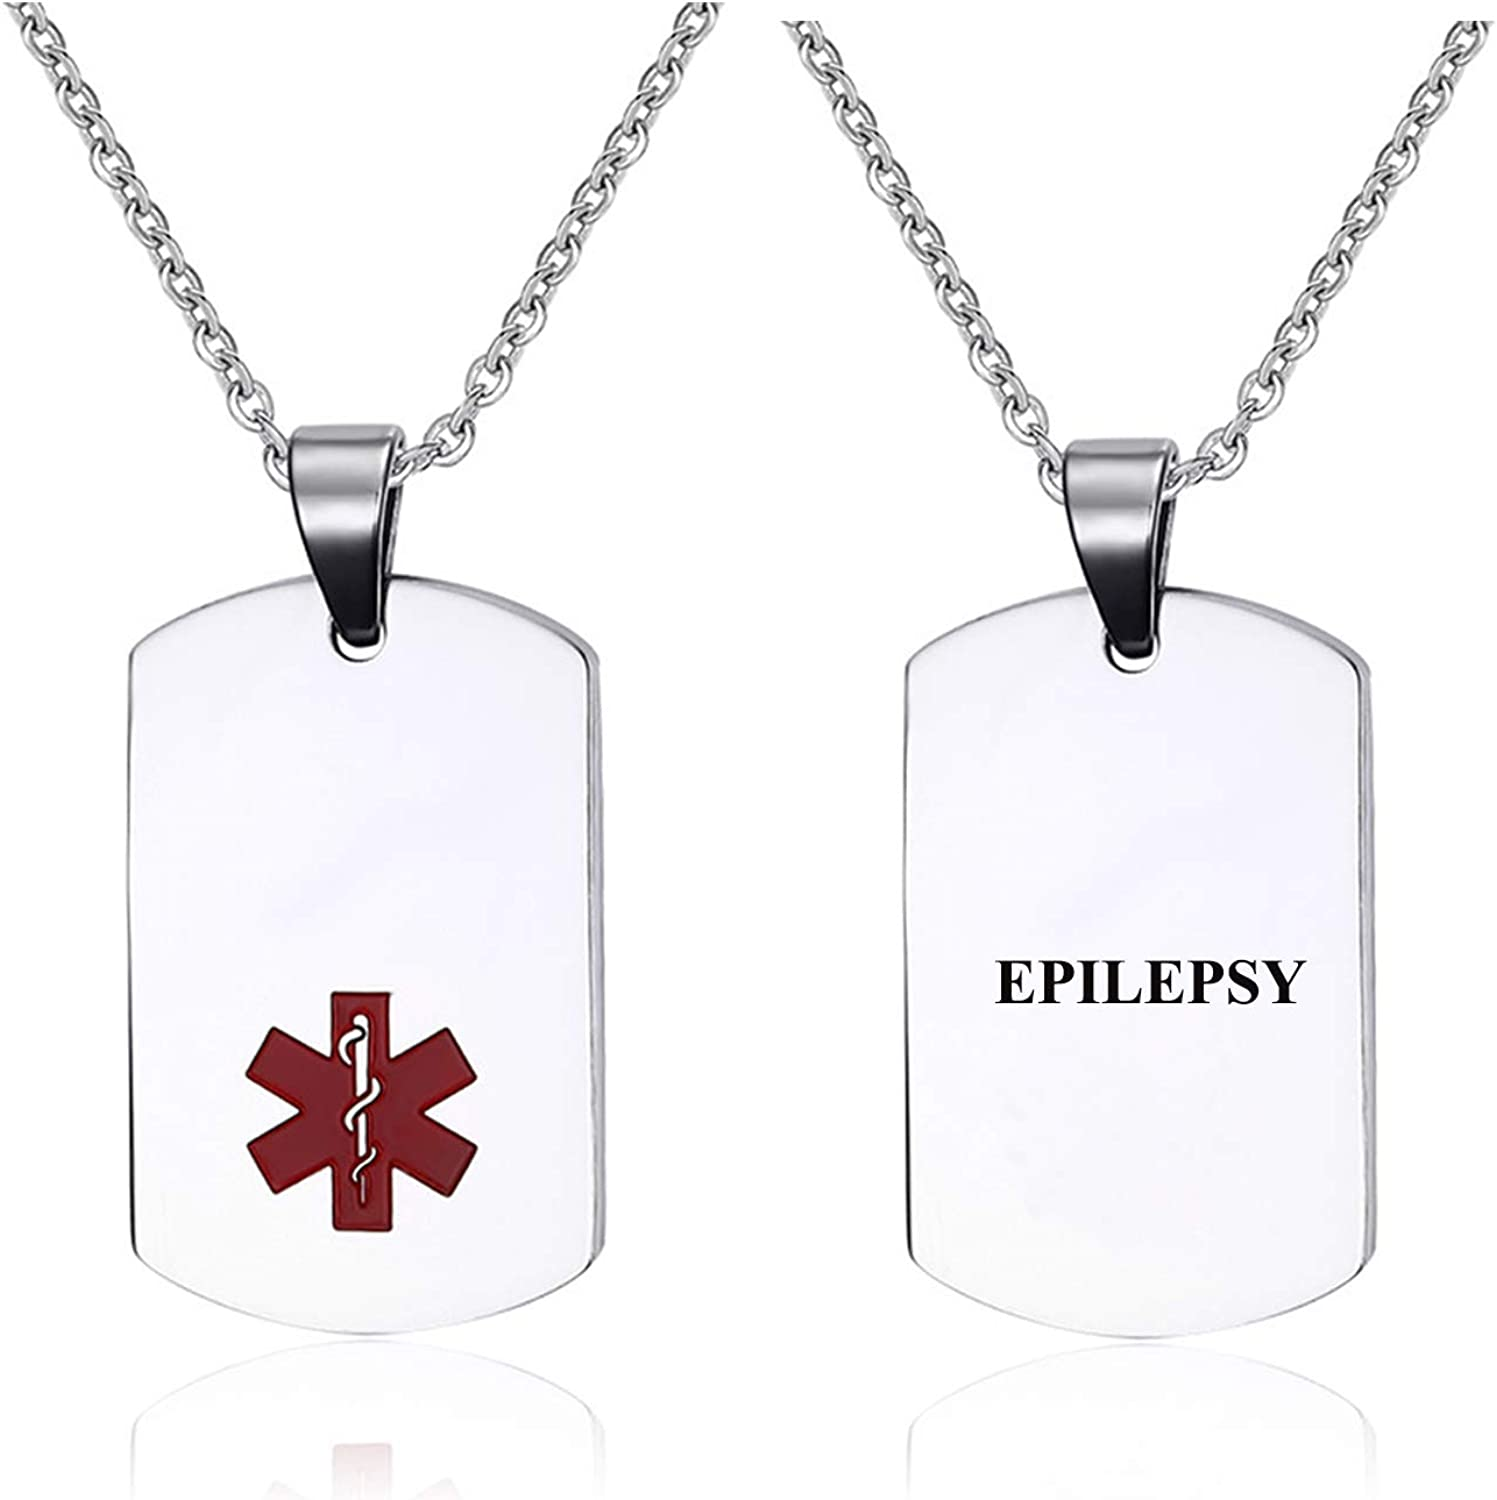 Pre-Engraved Stainless Steel Emergency Medical Alert ID Dog Tag Pendant Necklace for Men & Women